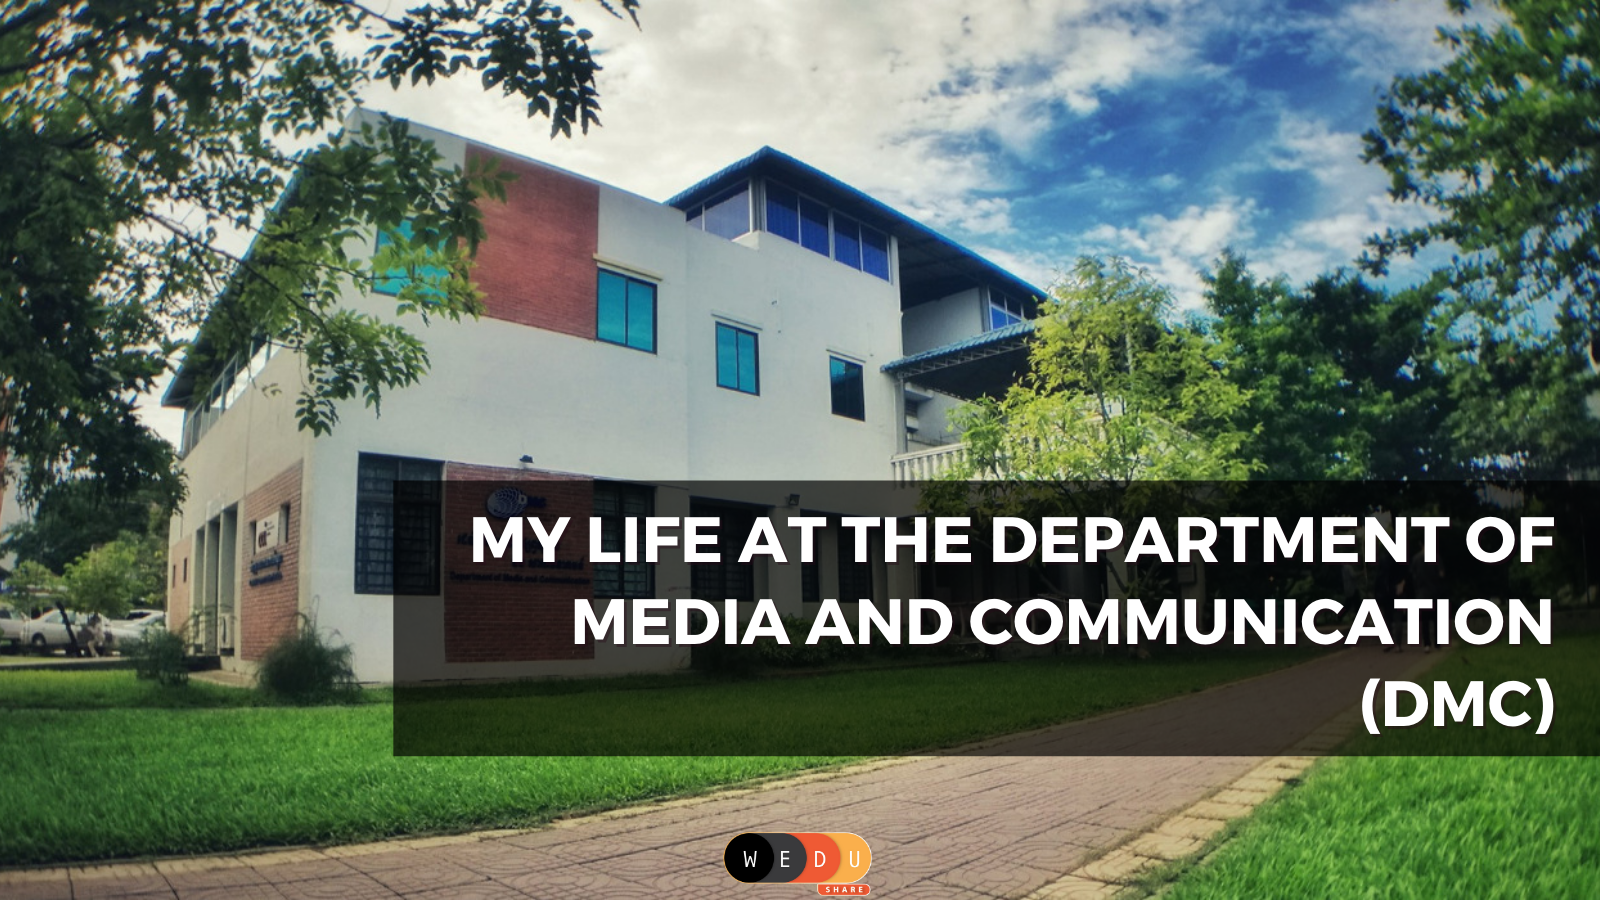 MY LIFE AT THE DEPARTMENT OF MEDIA AND COMMUNICATION (DMC)